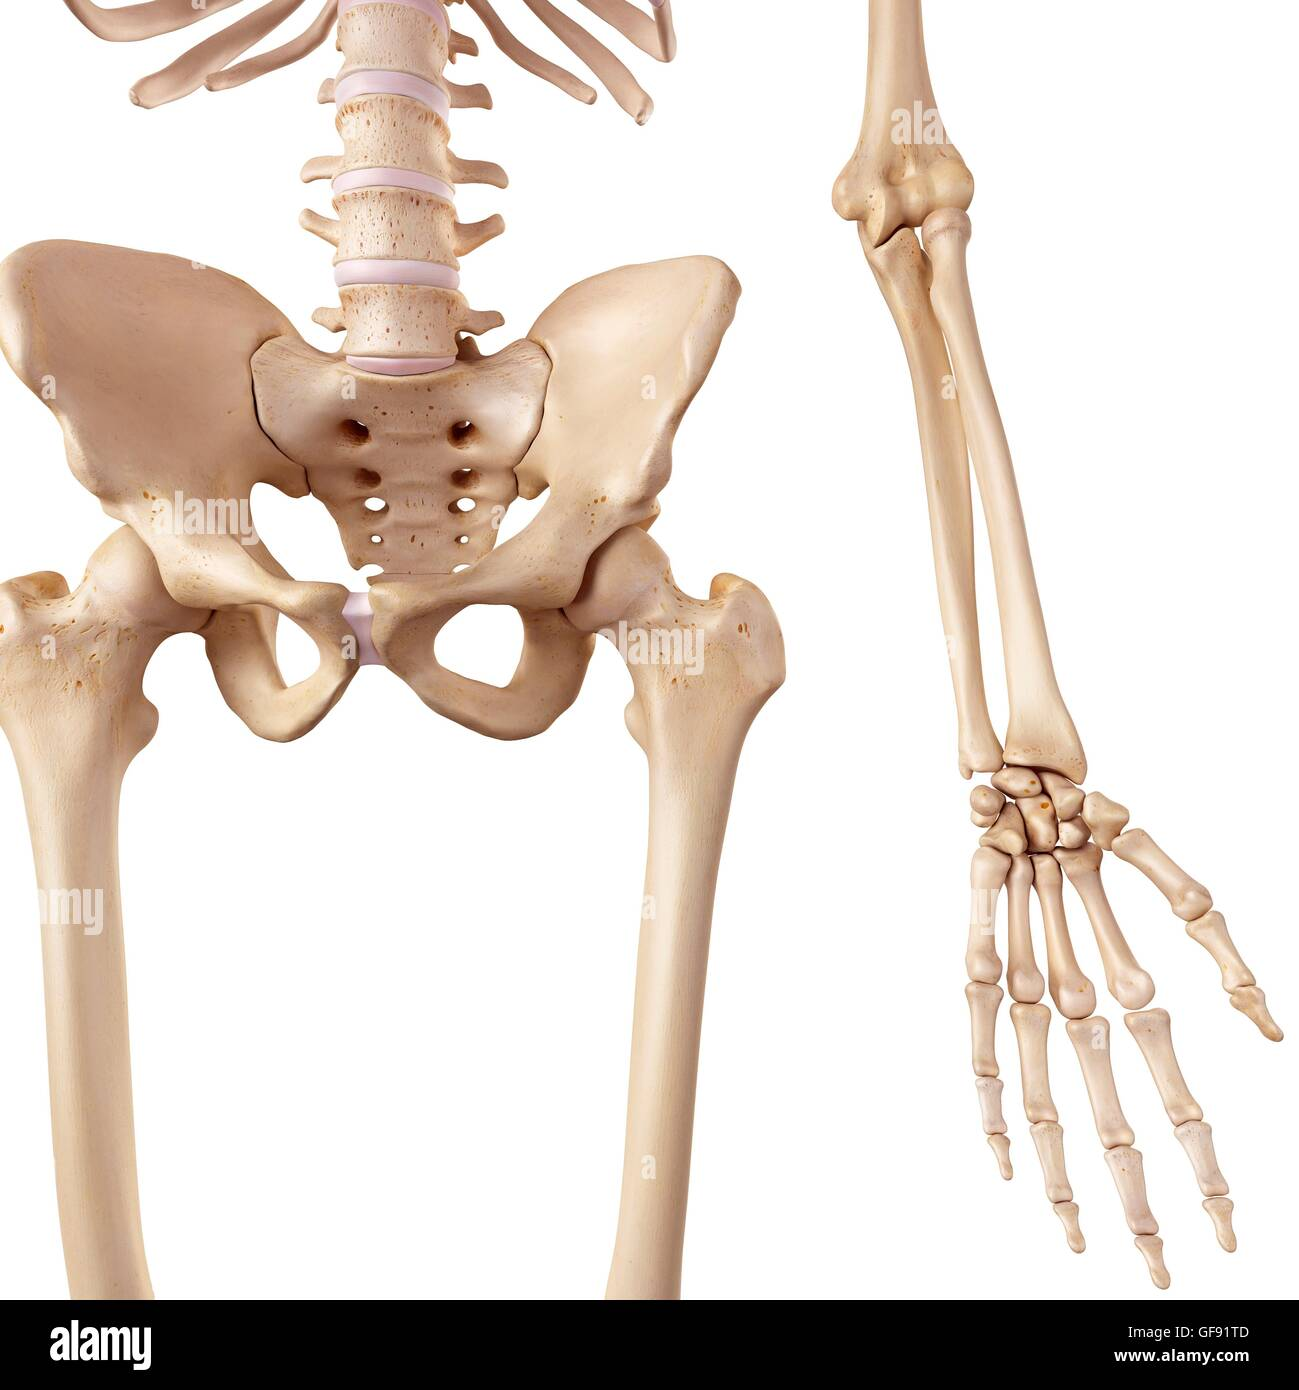 human bone structure diagram 2001 ford focus ignition wiring of hip bones schematic illustration stock photo 112681085 alamy